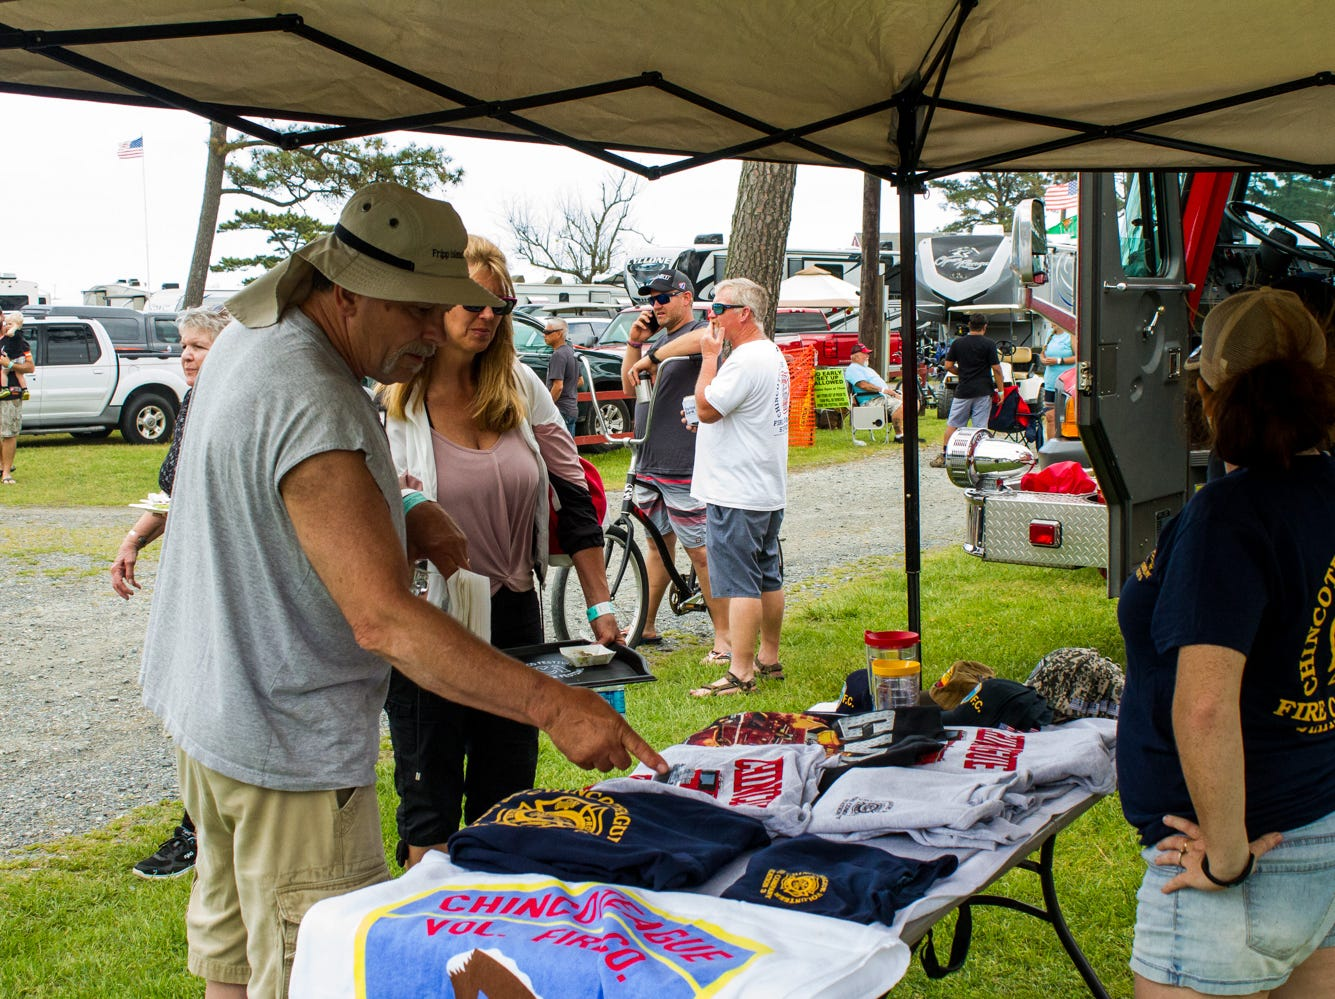 Allen and Tammy Hoeffner of Strasburg, CO inspect t-shirts for sale by the Chincoteague Volunteer Fire Department on Saturday, May 4, 2019 at the Chincoteague Seafood Festival in Chincoteague, VA.